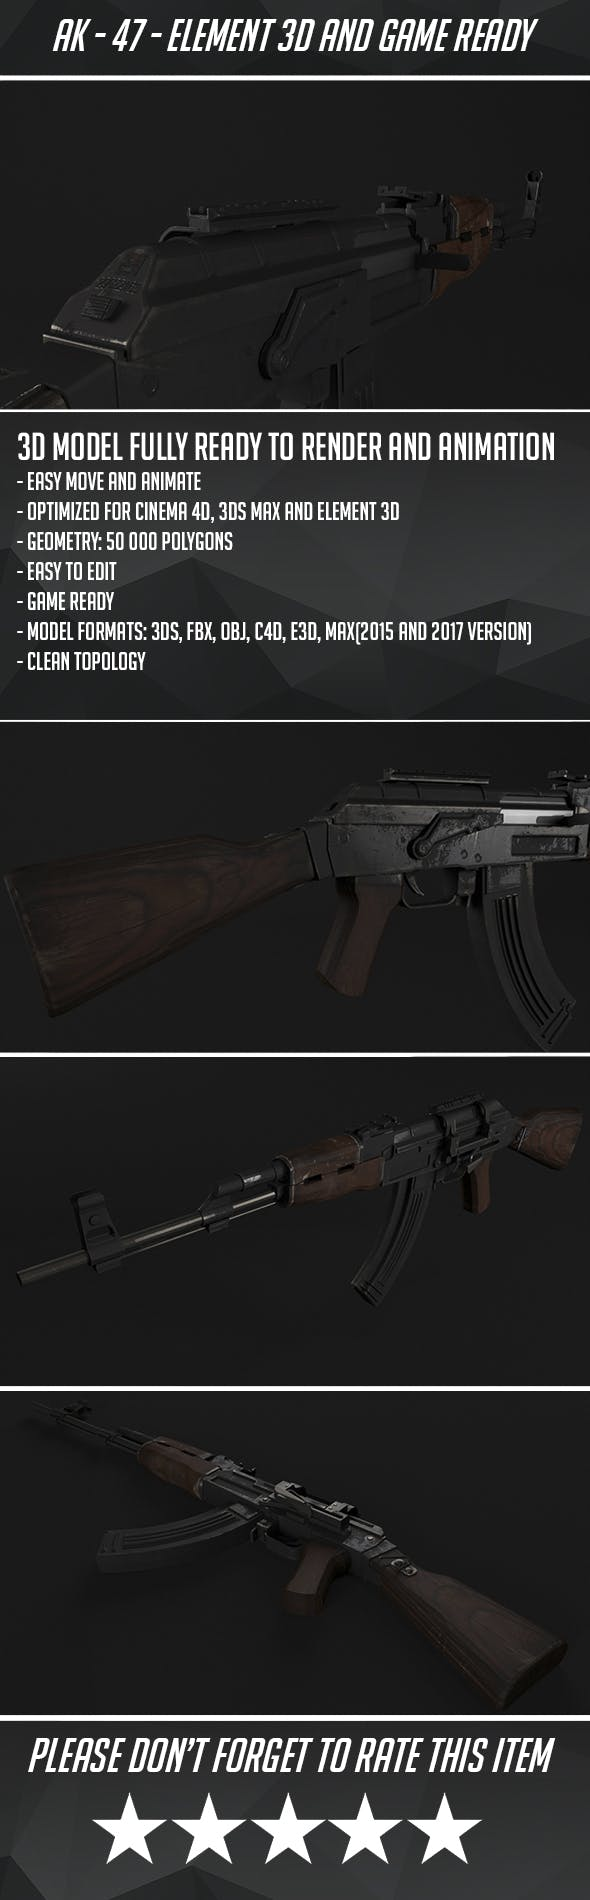 AK - 47 Assault Rifle - Game Ready - 3DOcean Item for Sale